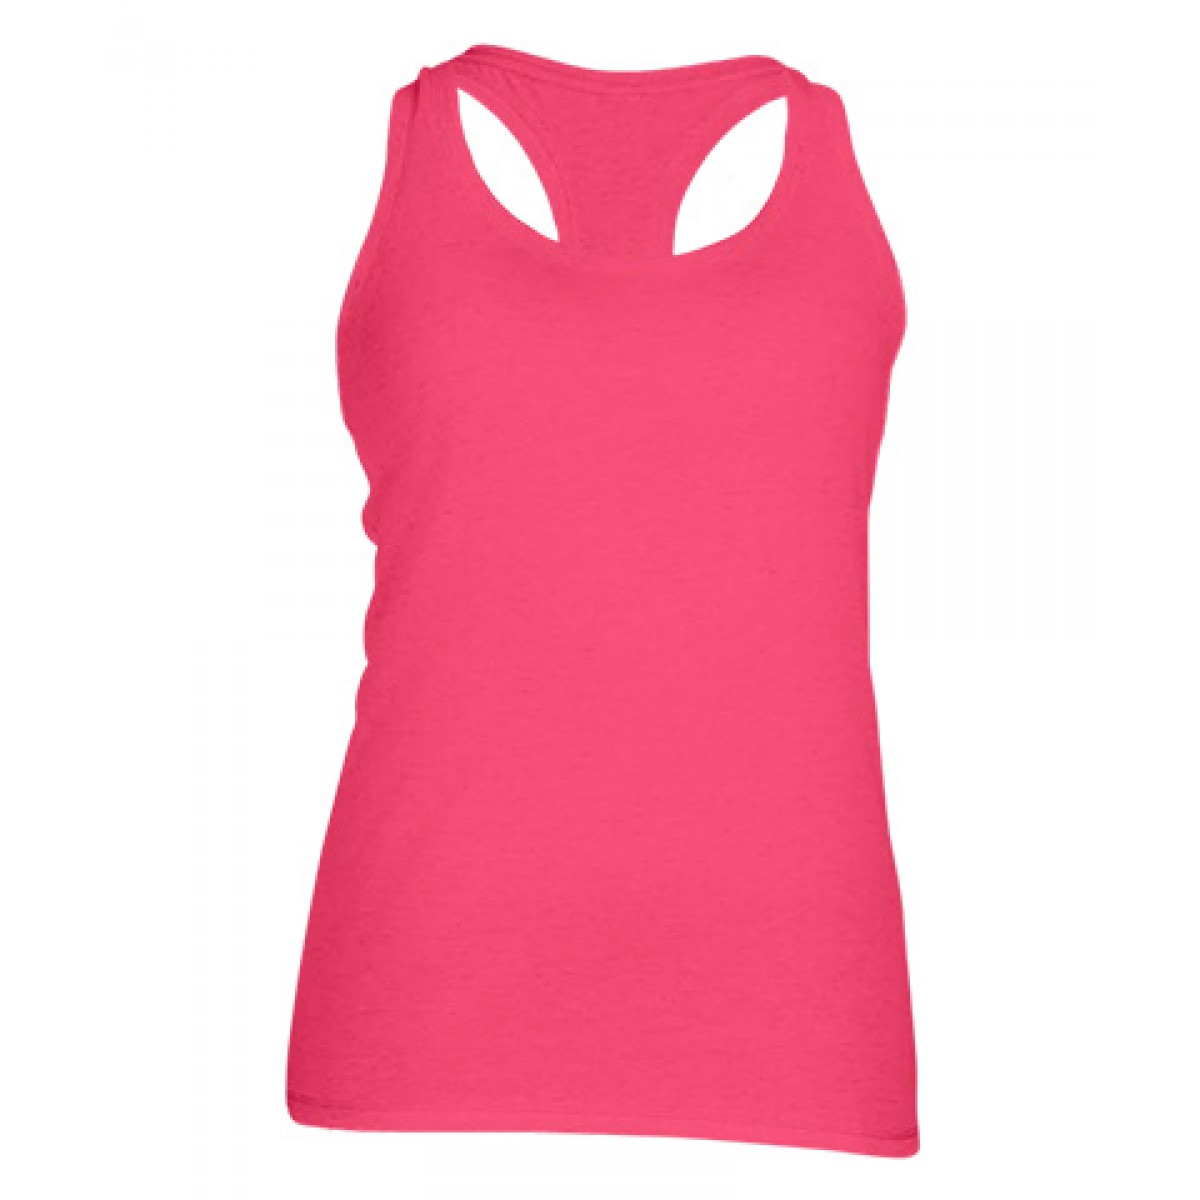 Ladies' Performance Racerback Tank-Safety Pink-2XL